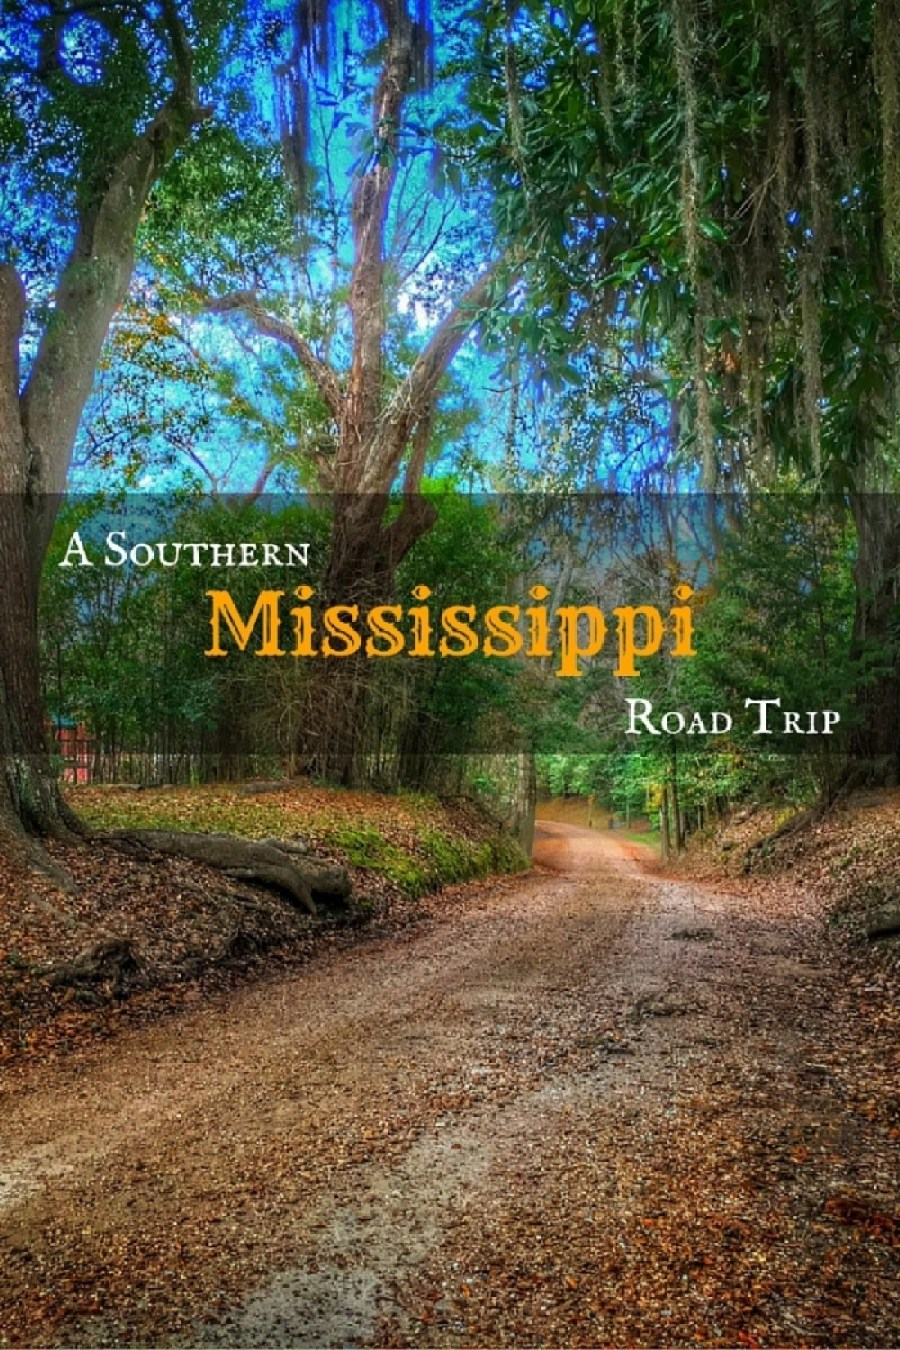 Mississippi 4 - A Southern Mississippi Road Trip